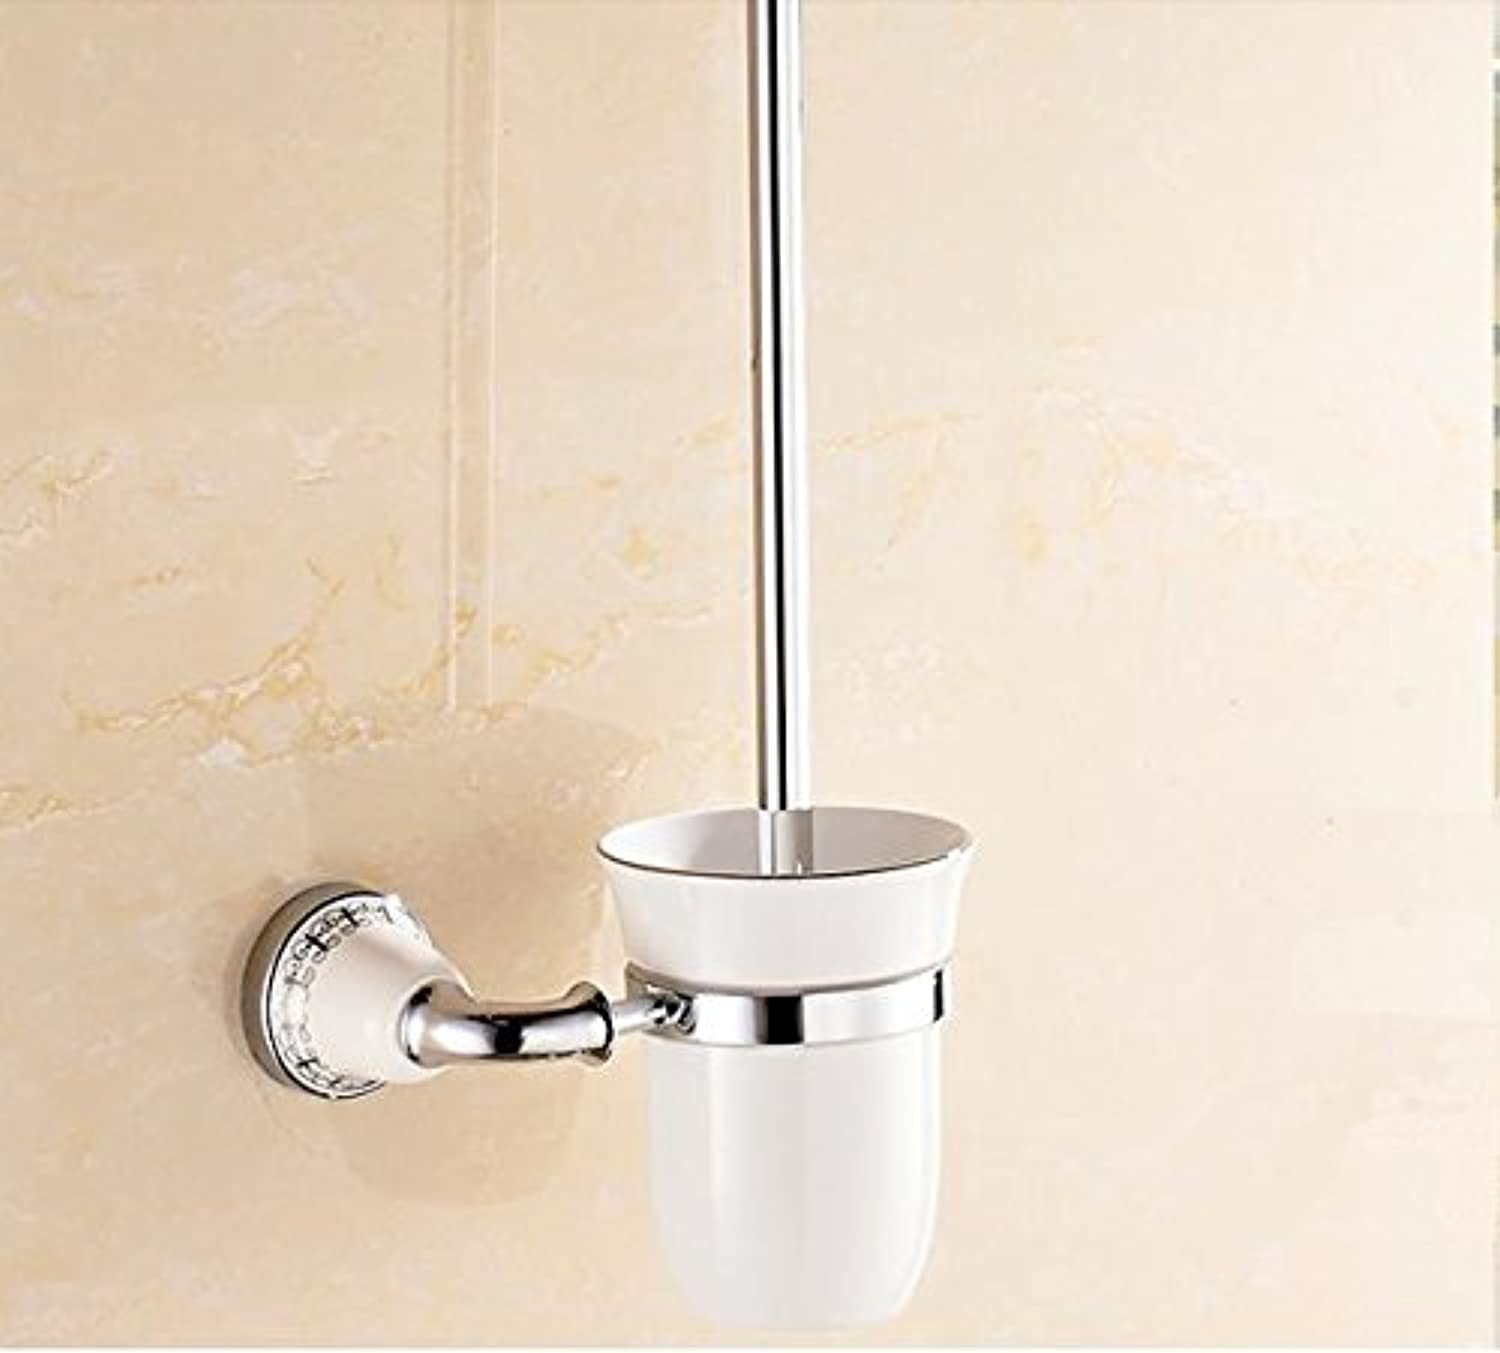 TACCY Bathroom Toilet Brush with Frosted Glass Cup and Brass Holder in Chrome Finish  MK01C